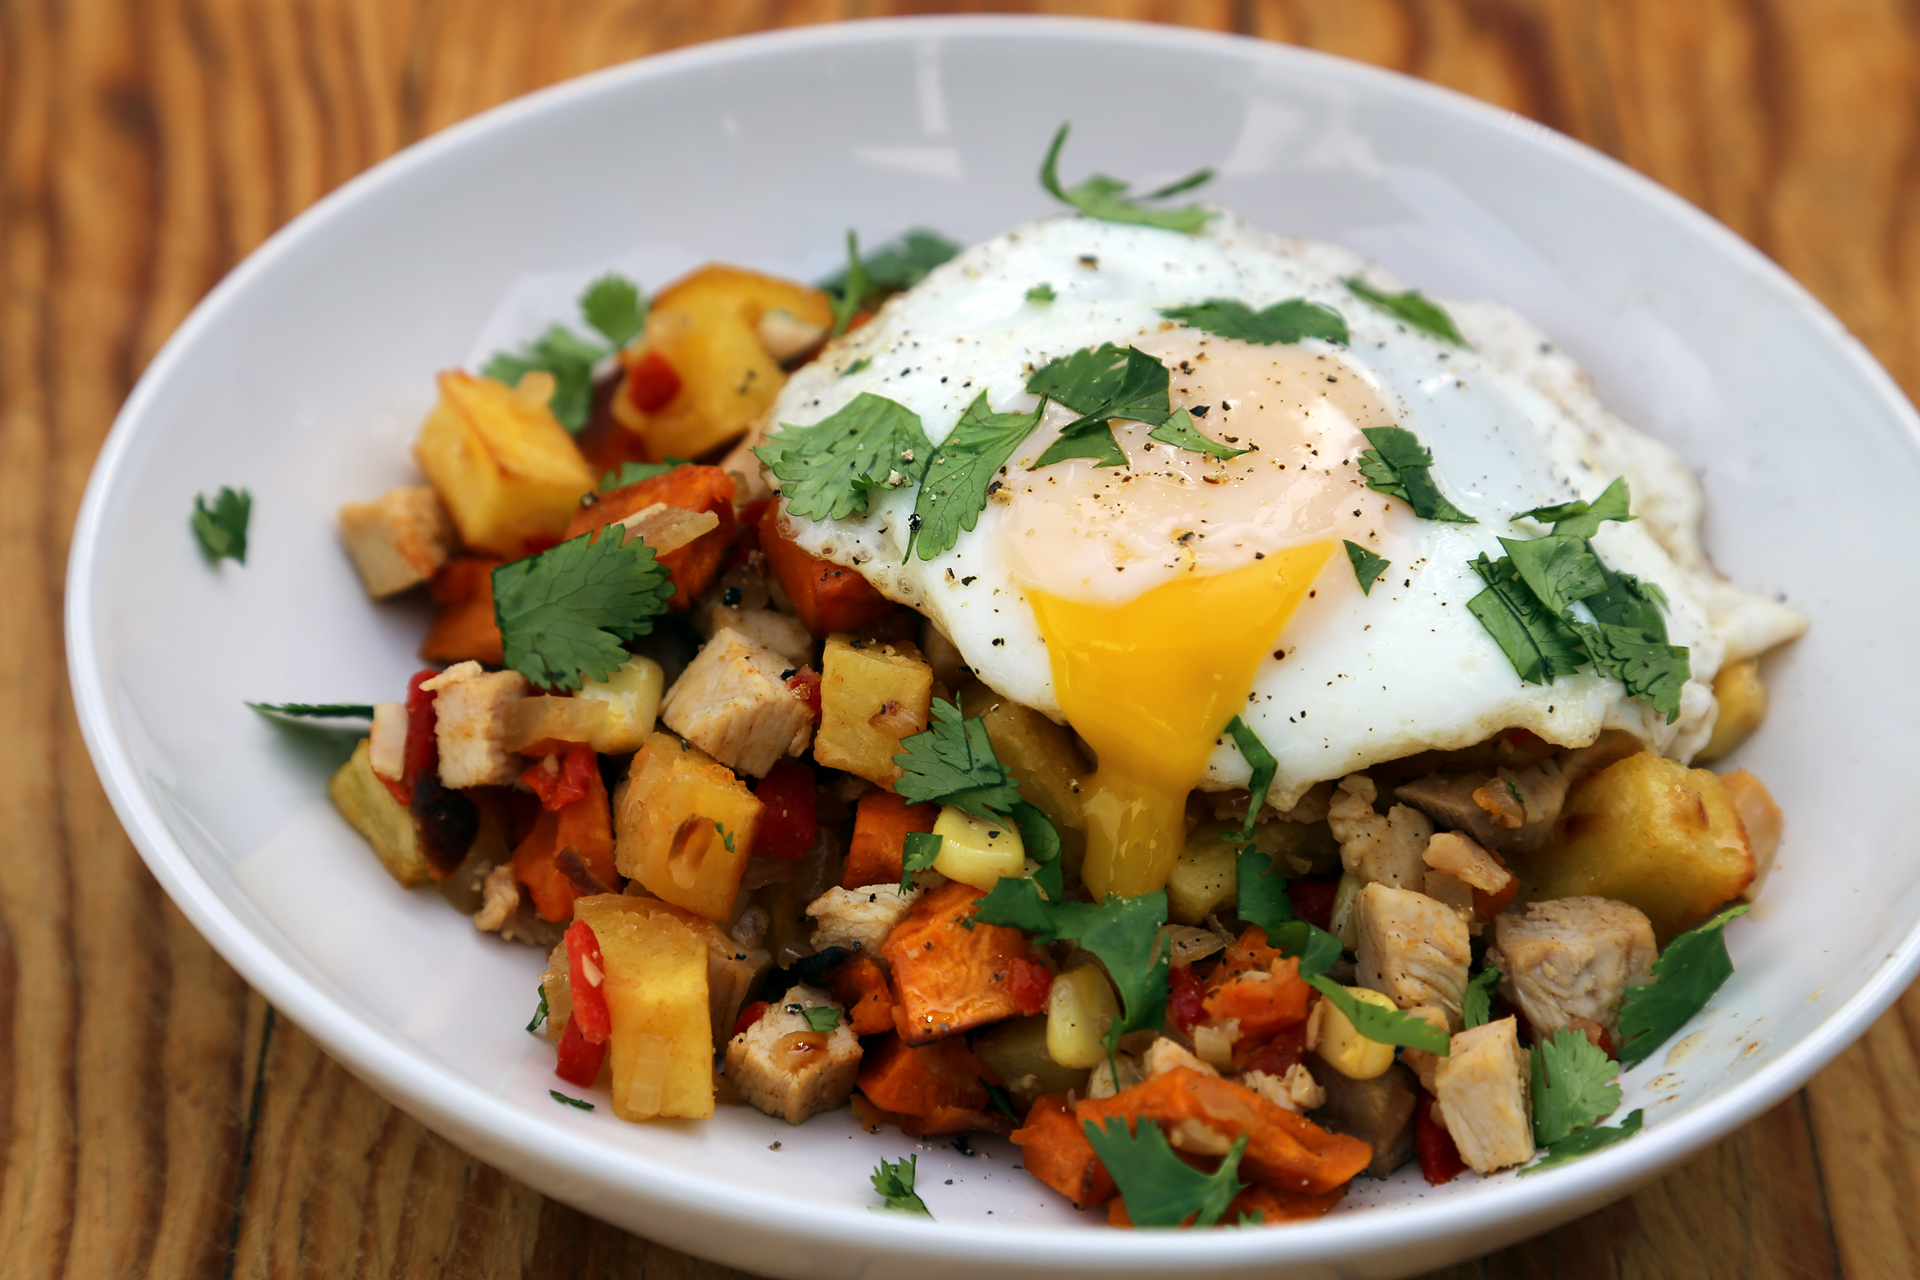 Serve the hash topped with a fried egg.